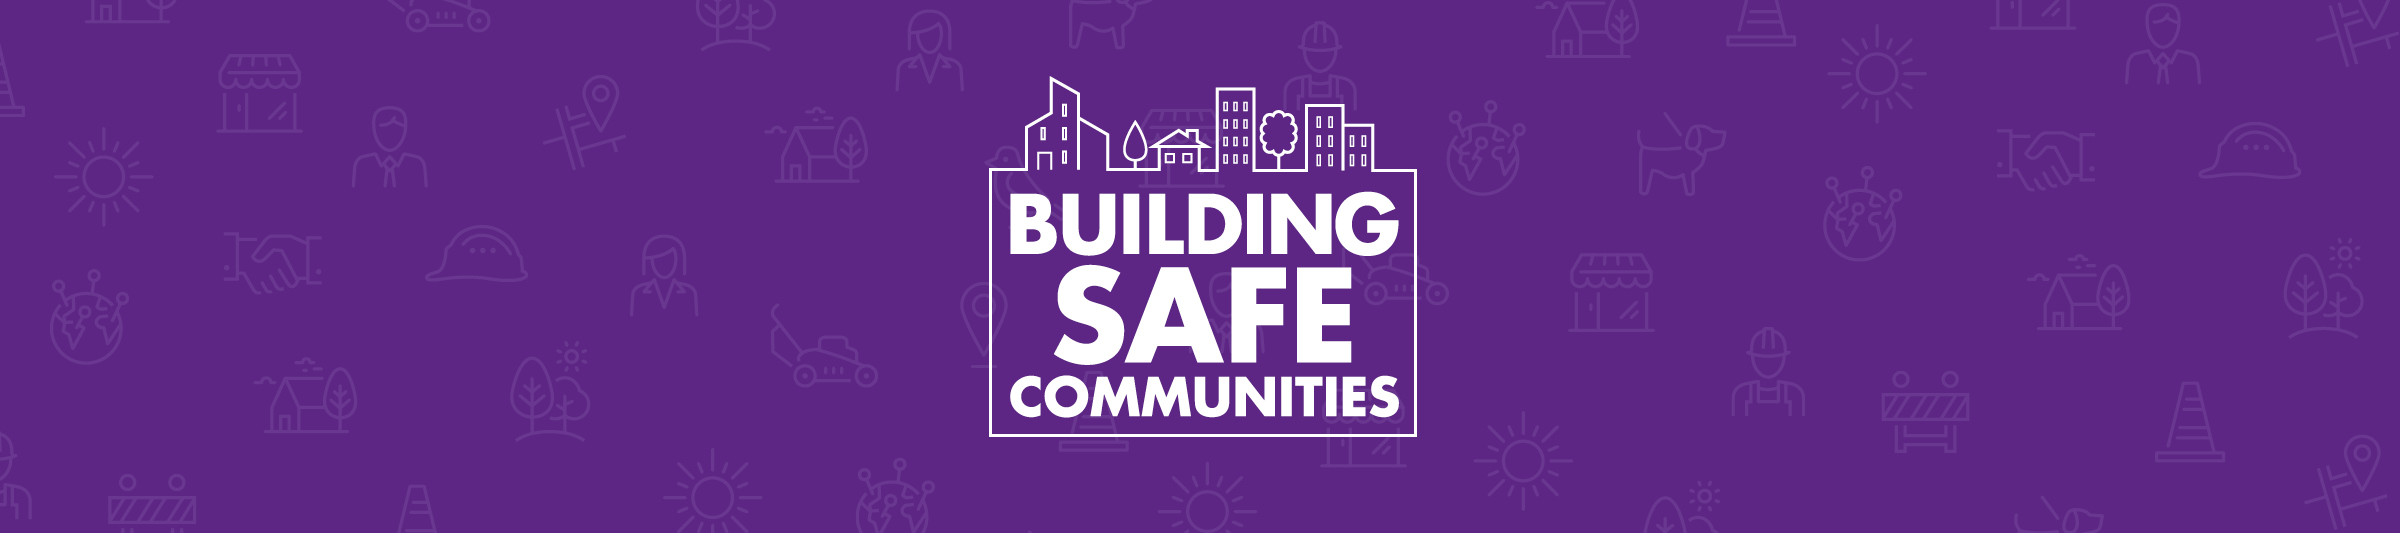 banner: Building Safe Communities